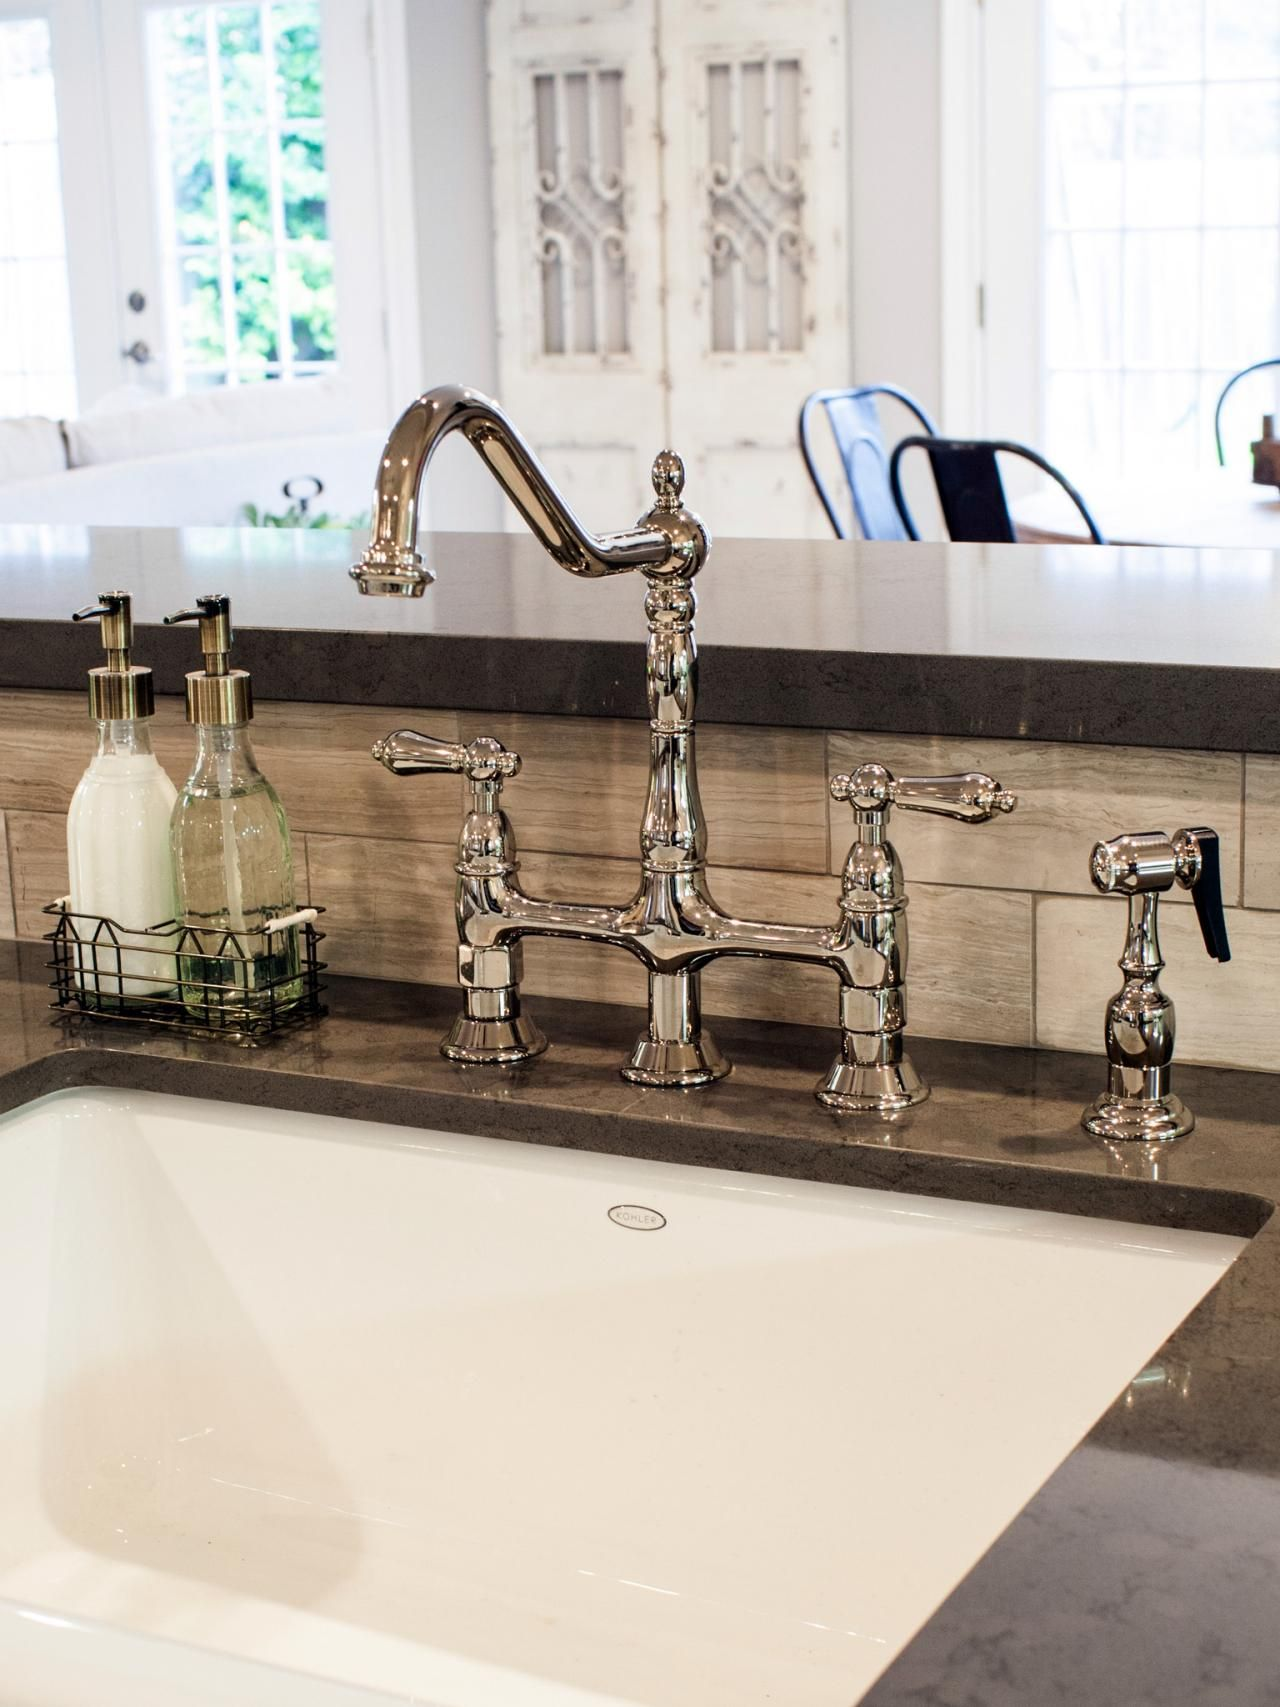 Hgtv fixer upper kitchen faucet - Fixer Upper A Fresh Update For A 1962 Shingle Shack